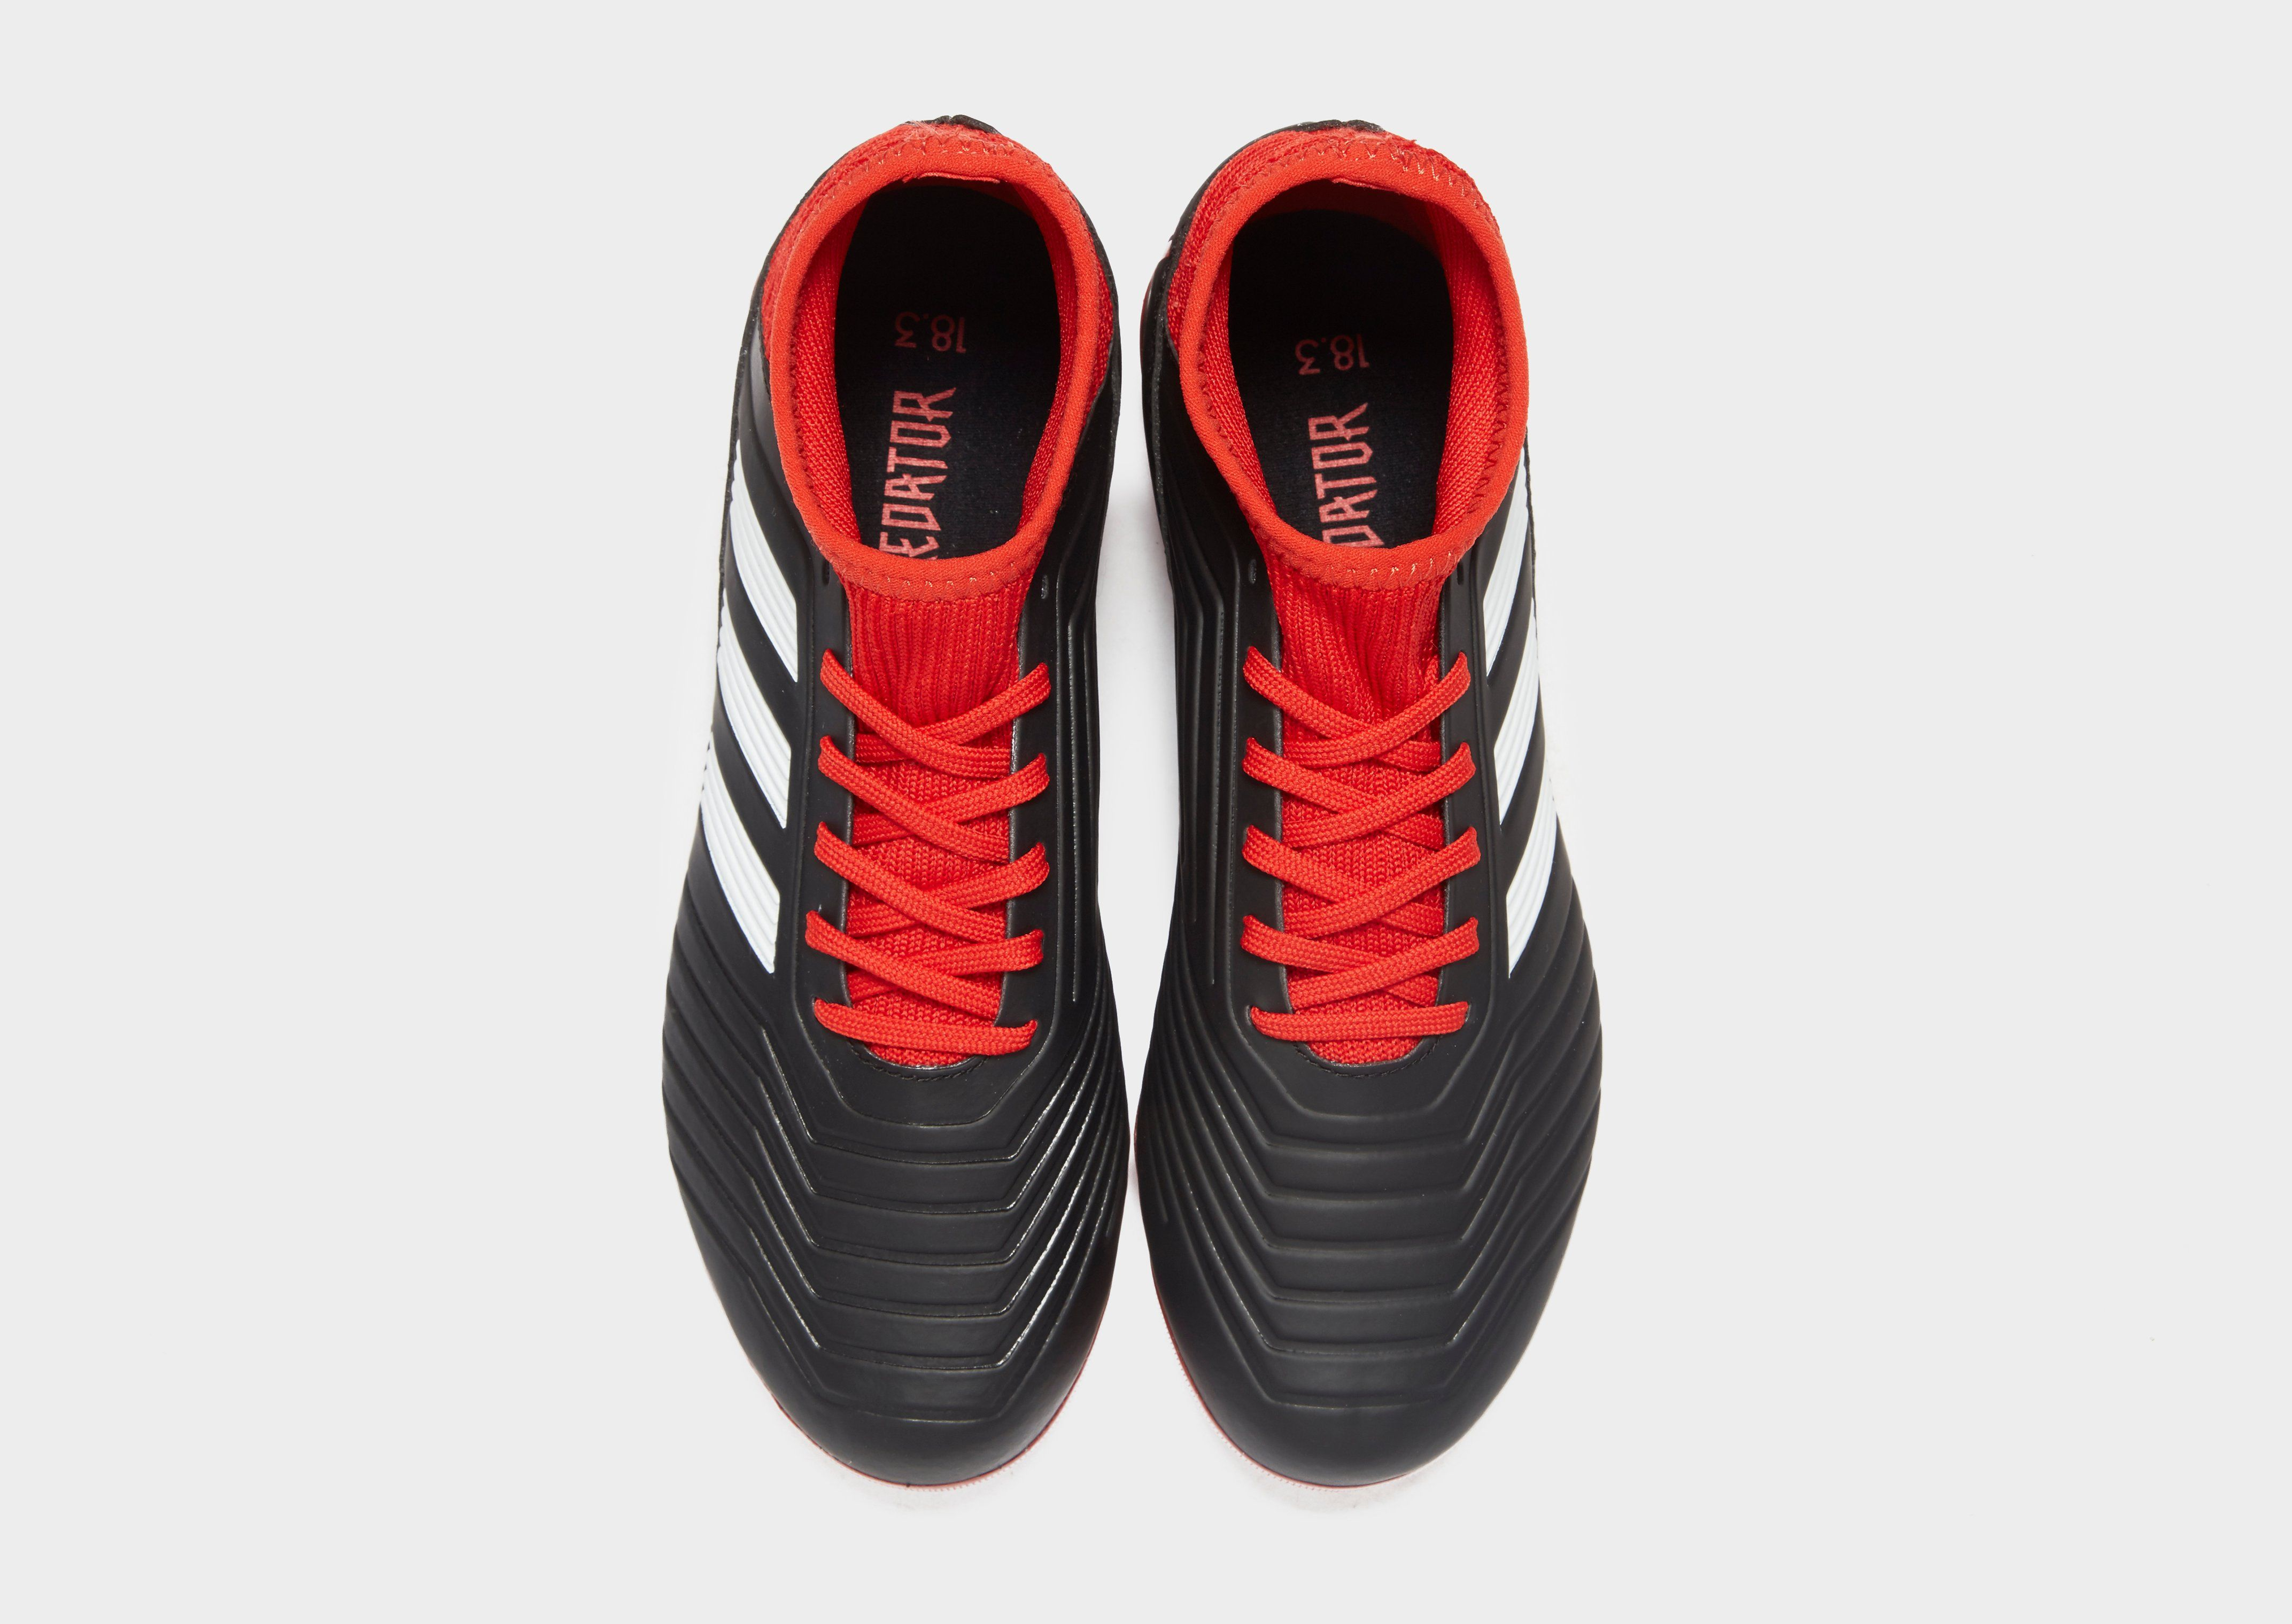 adidas Team Mode Predator 18.3 FG Junior